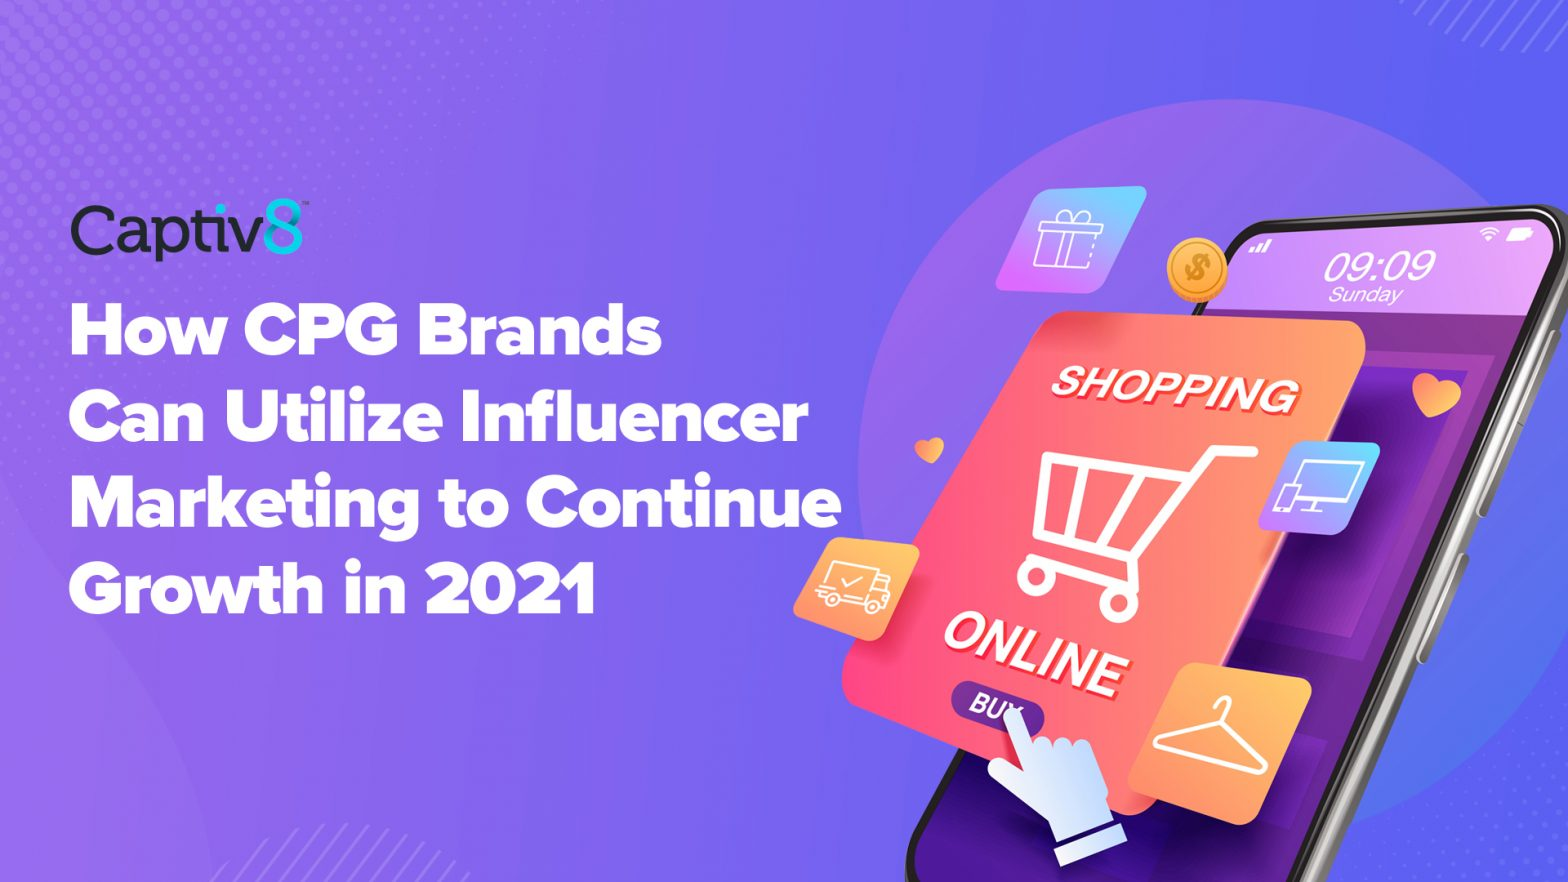 How CPG Brands Can Utilize Influencer Marketing to Continue Growth in 2021